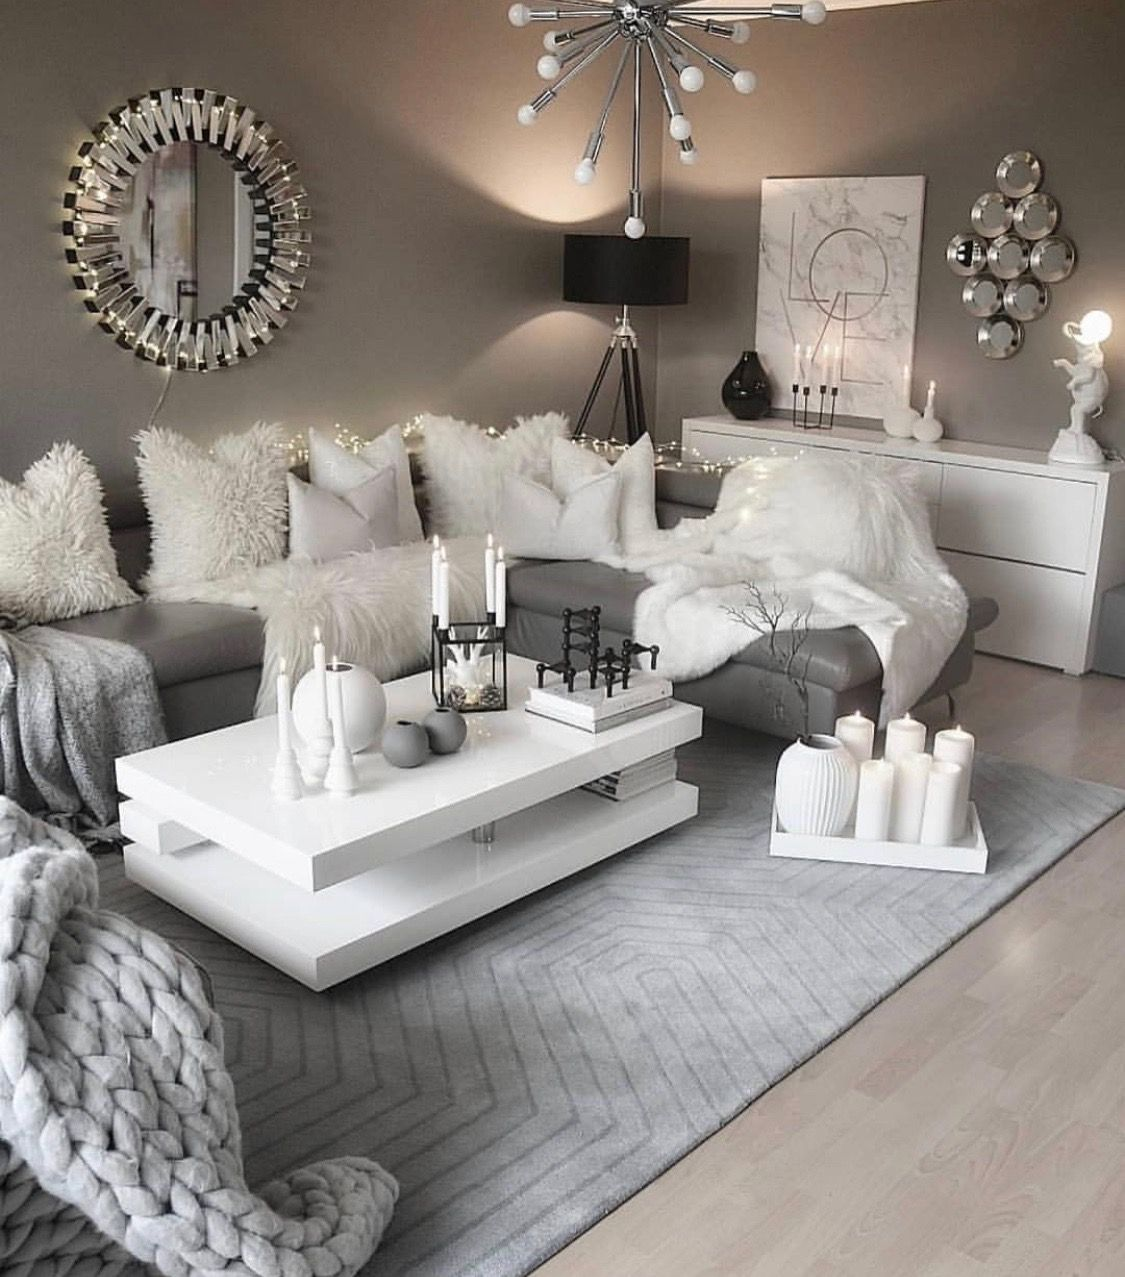 Pin by Lily germanotta on Design ♥️  Living room decor